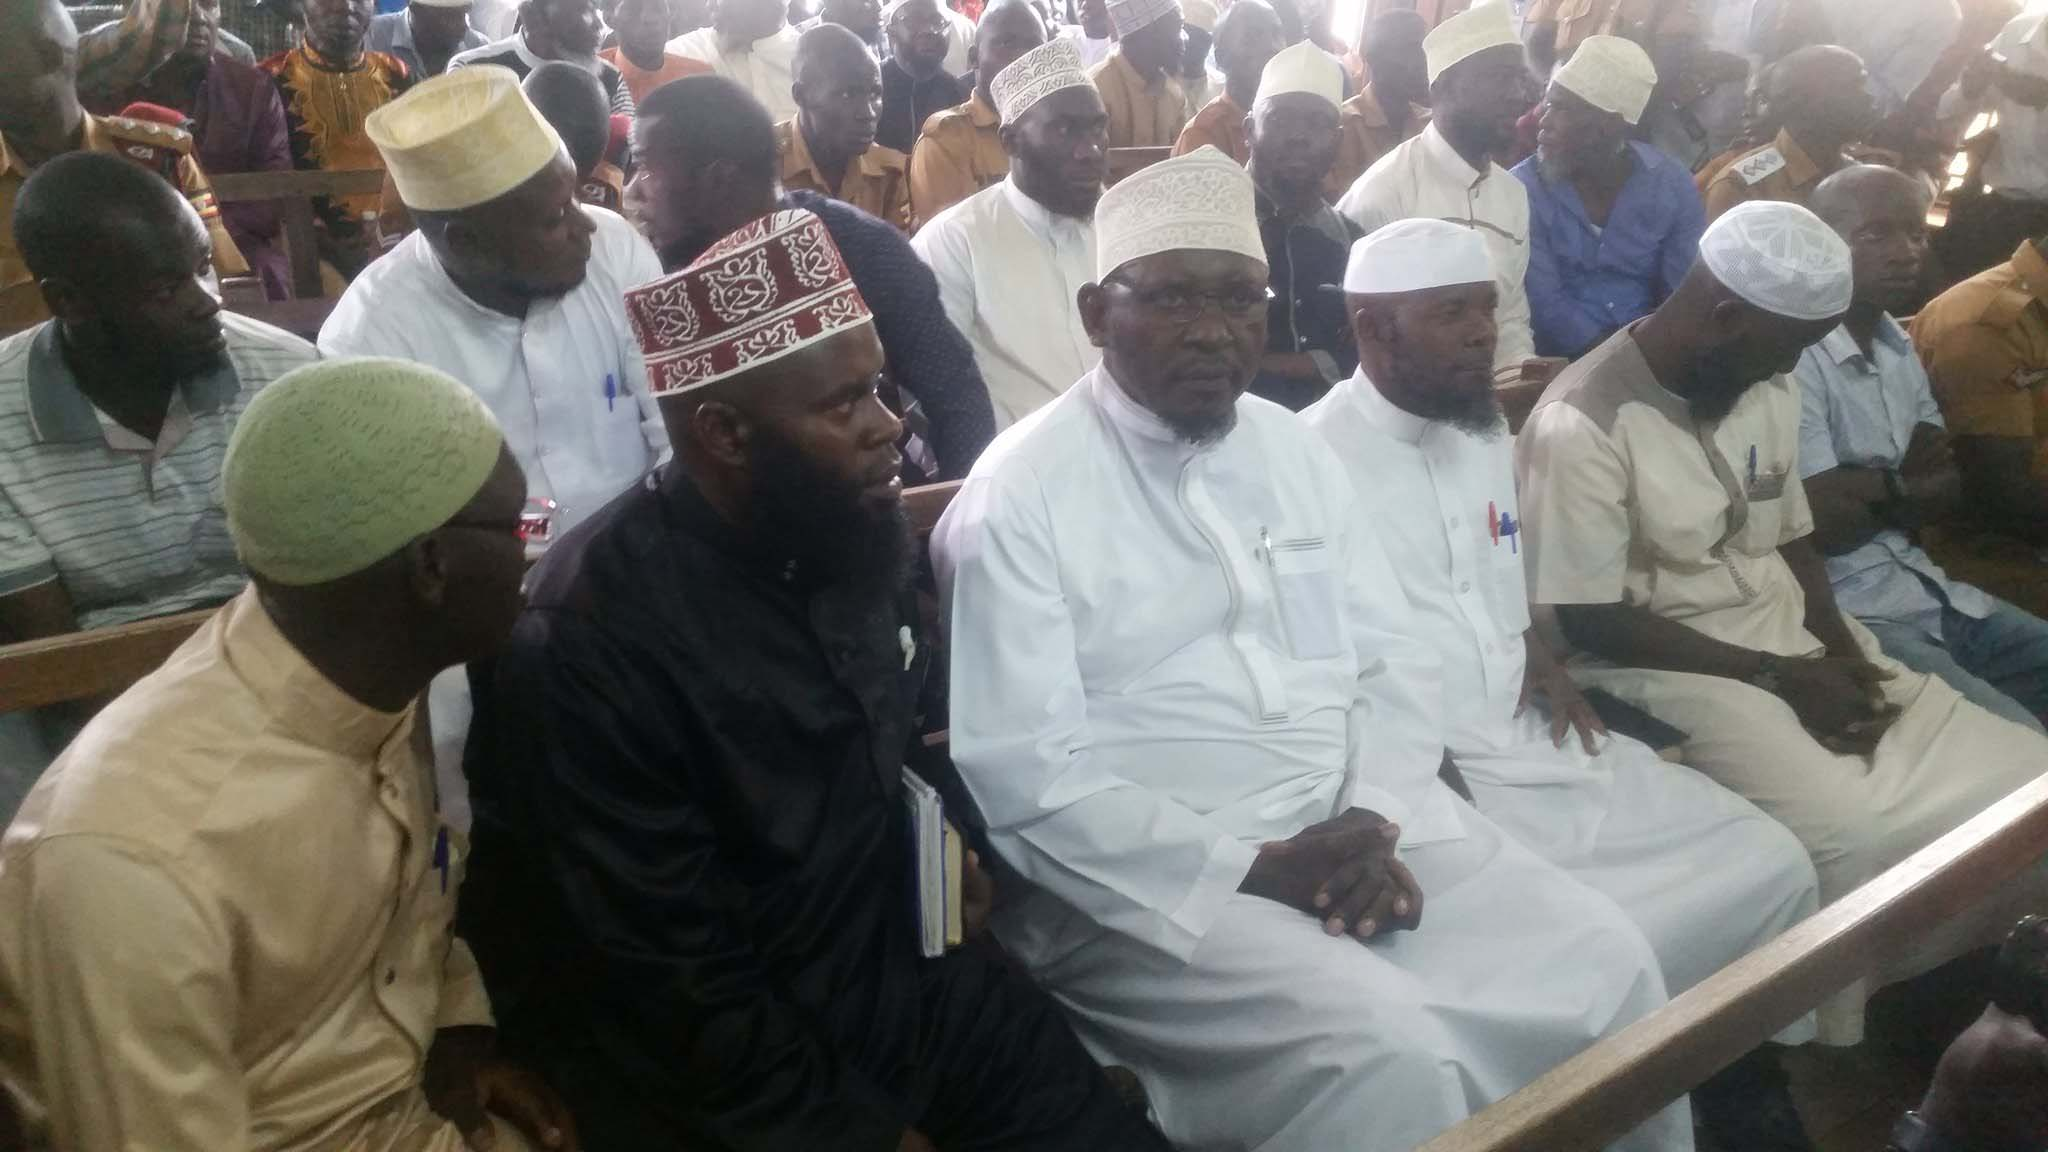 Sheikh Kamoga and co-accused in court on Monday, August 21. PML Daily photo.